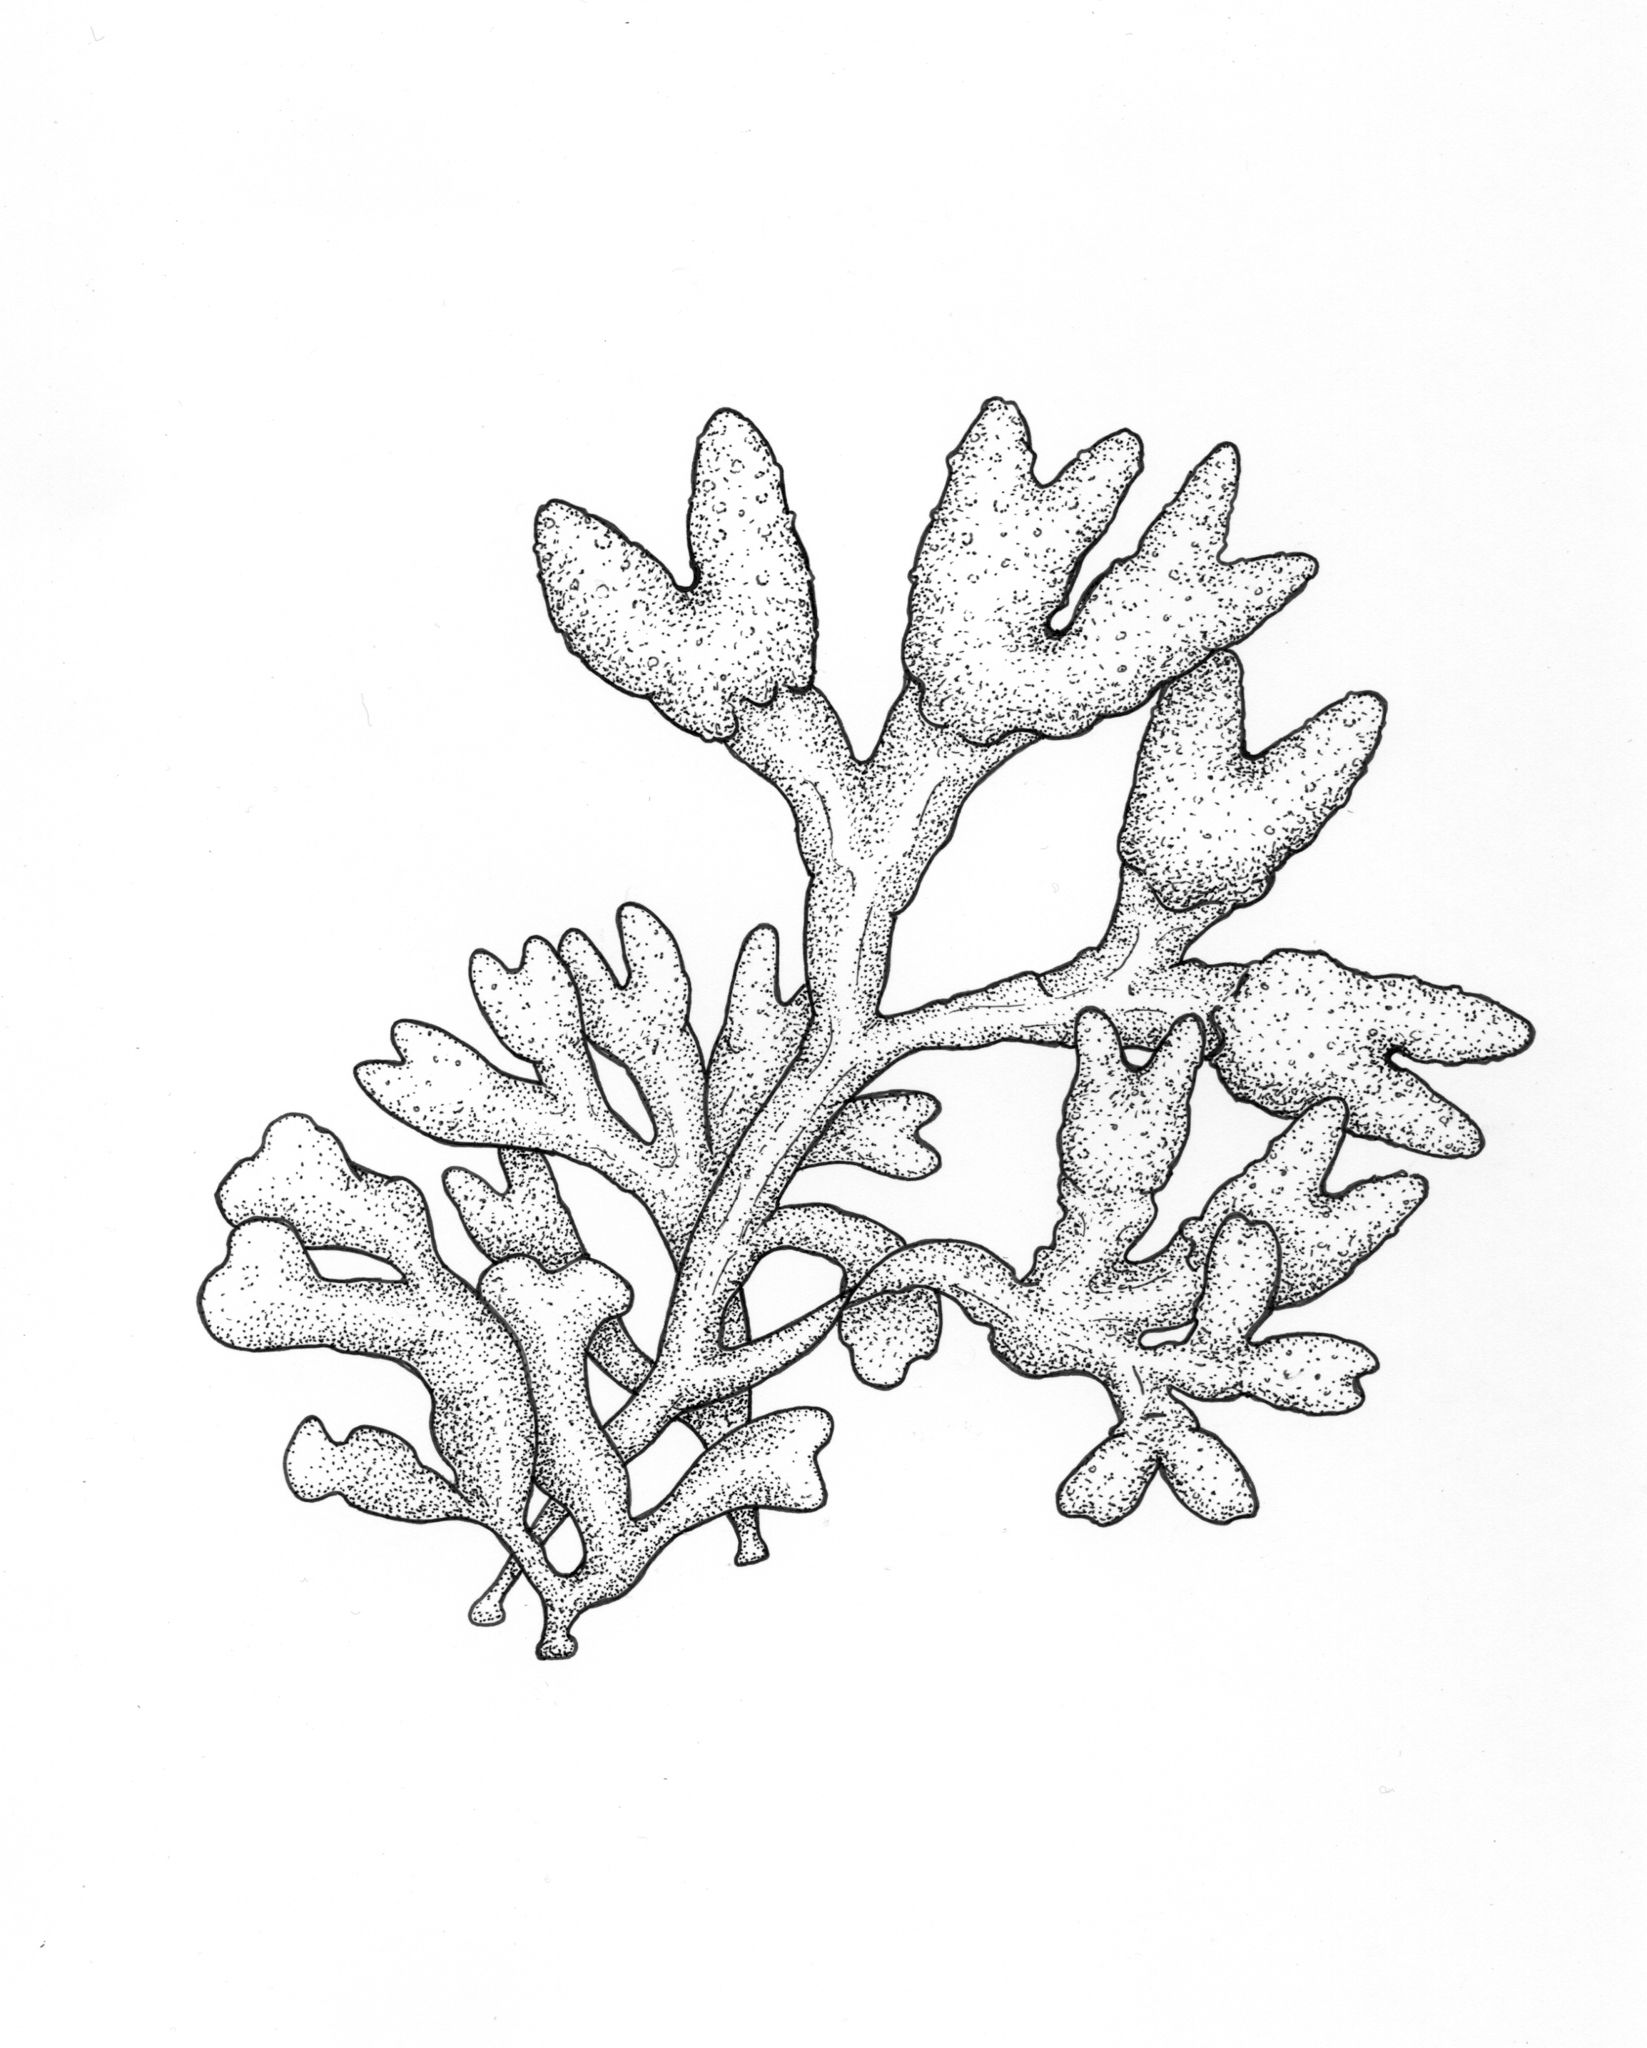 Popped, Rockweed, Fucus drawing, fucus, seaweed, rockweed, marine algae, drawing, seaweed drawing, Phaophyta